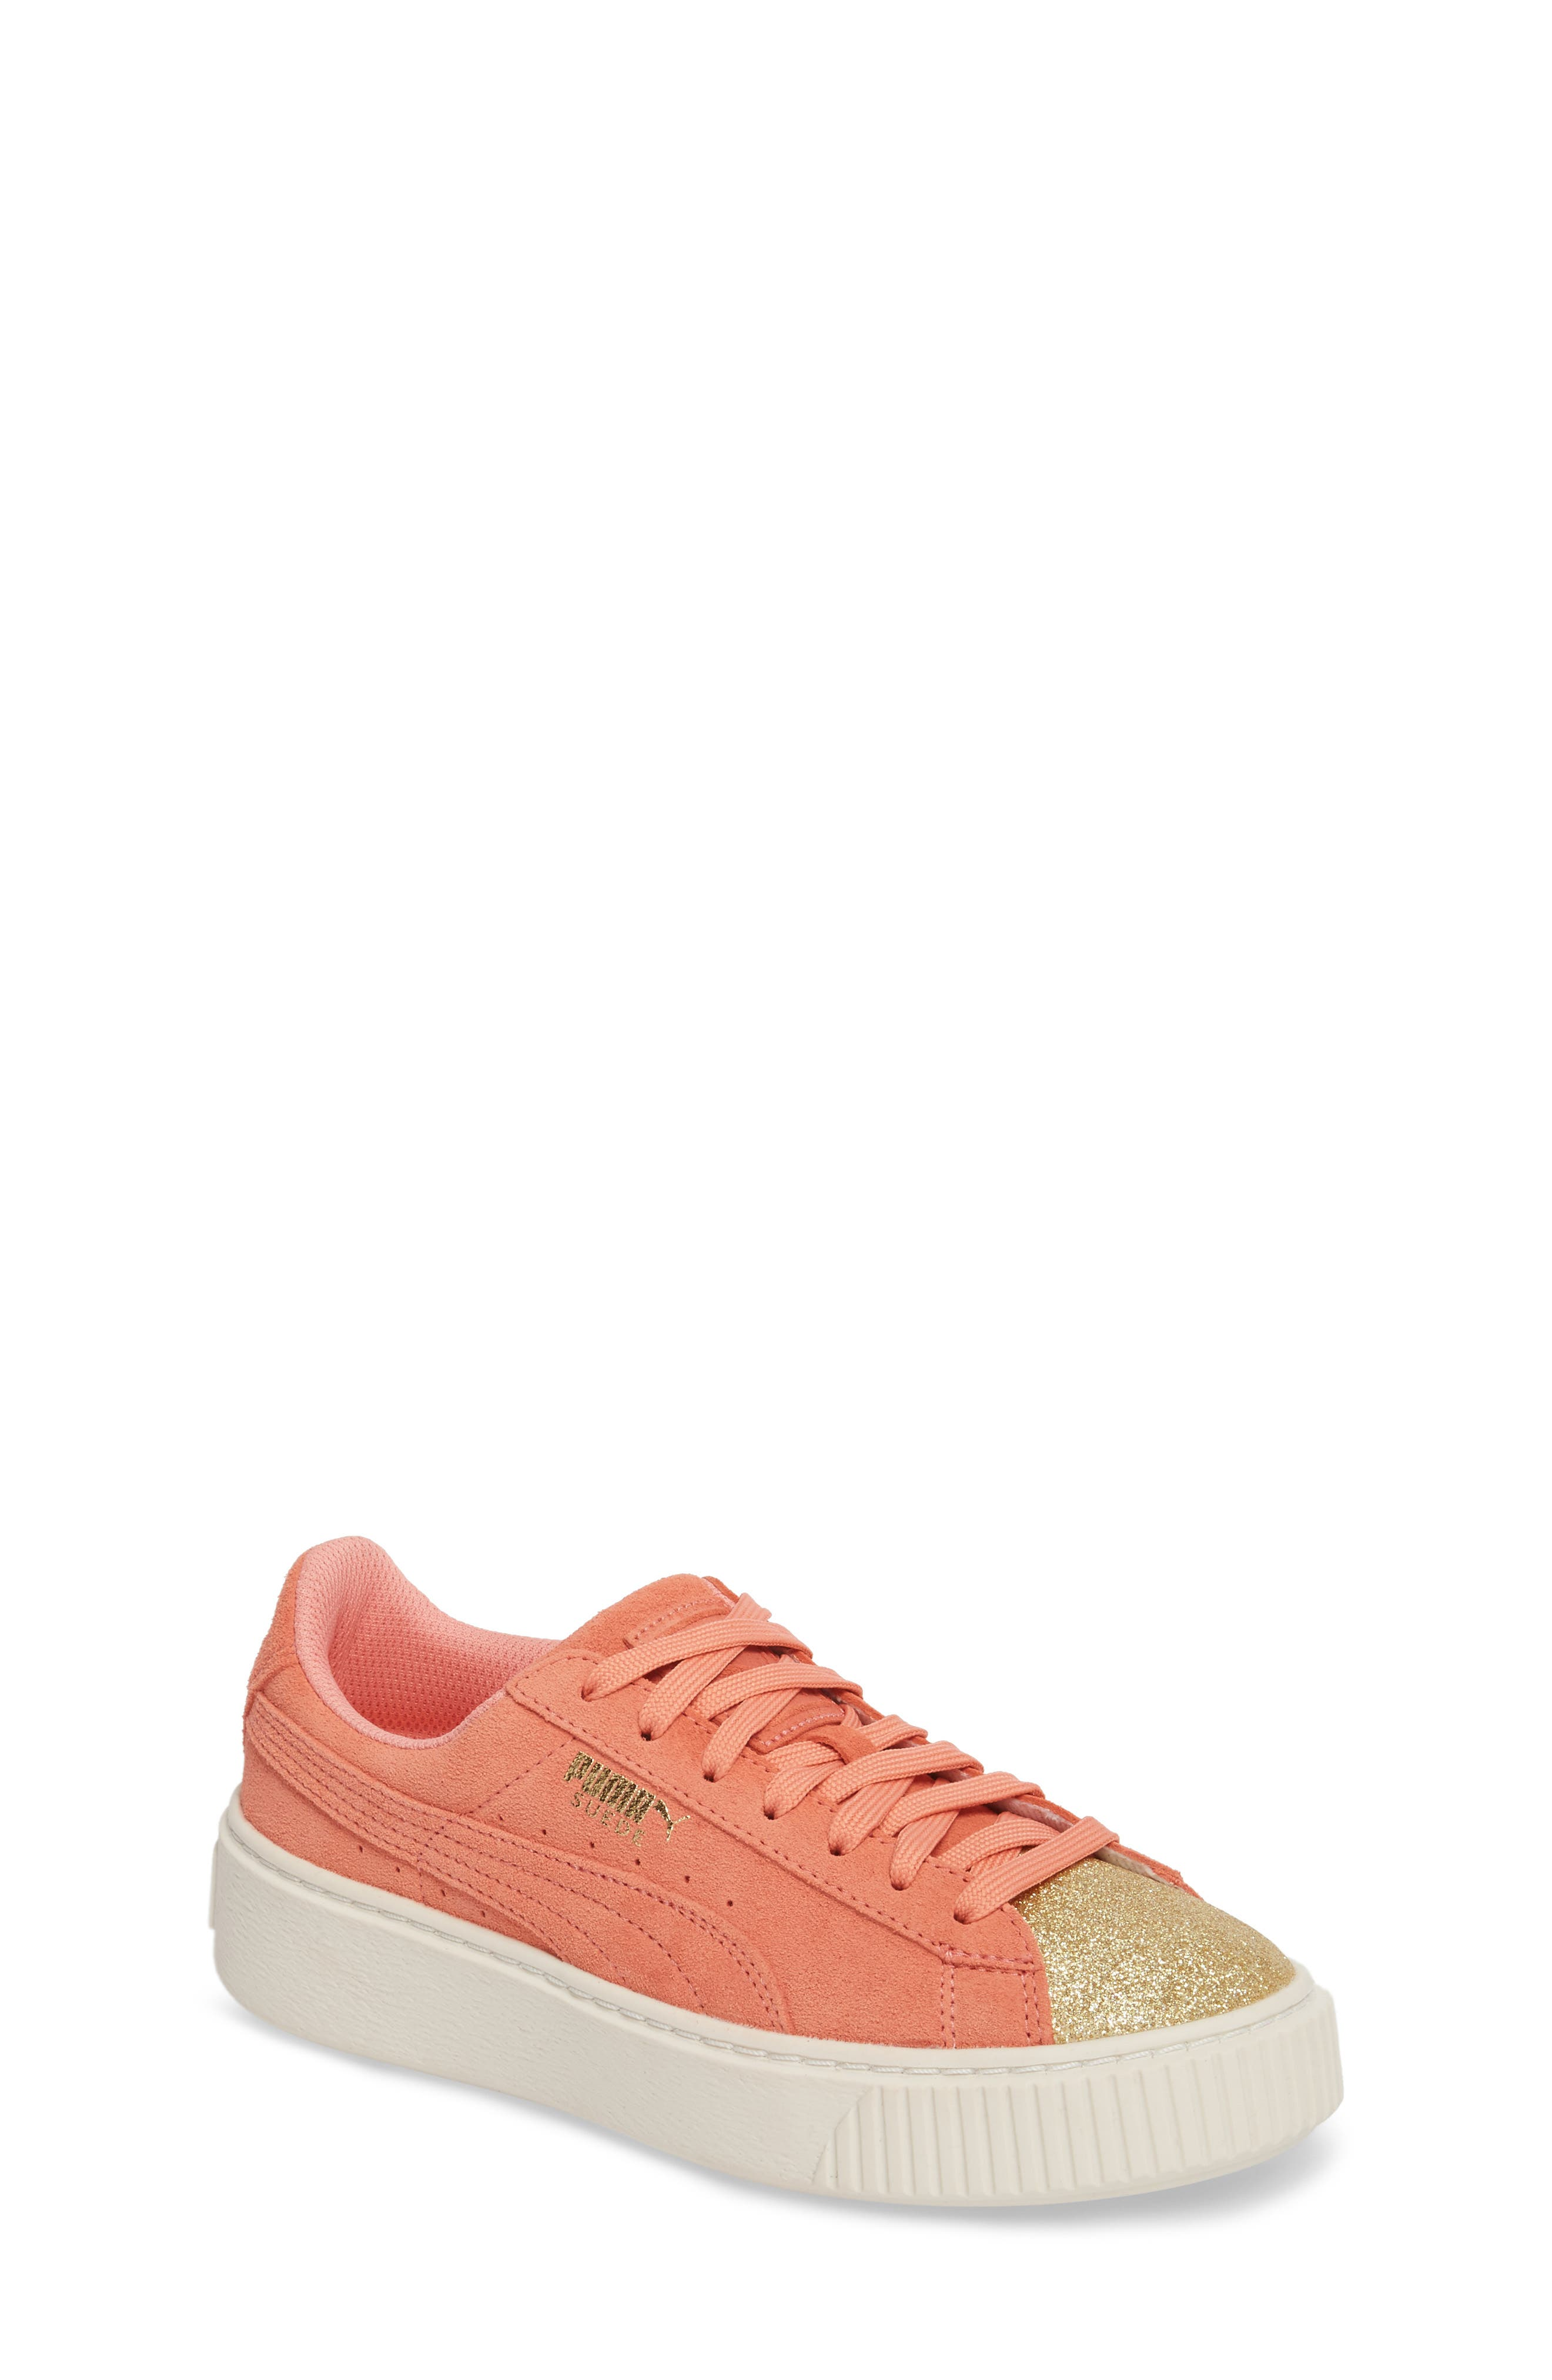 Suede Platform Glam PS Sneaker,                             Main thumbnail 1, color,                             Puma Team Gold/ Shell Pink